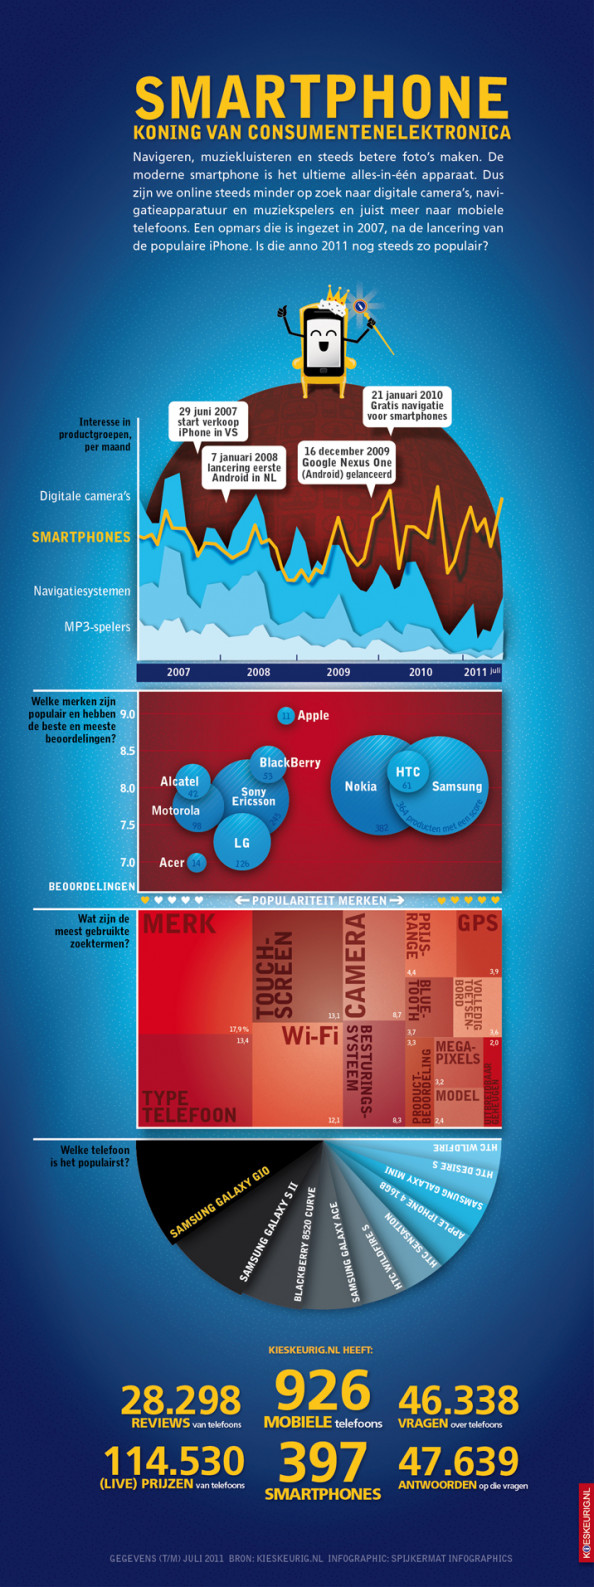 Smartphone King of Consumer Electronics Infographic